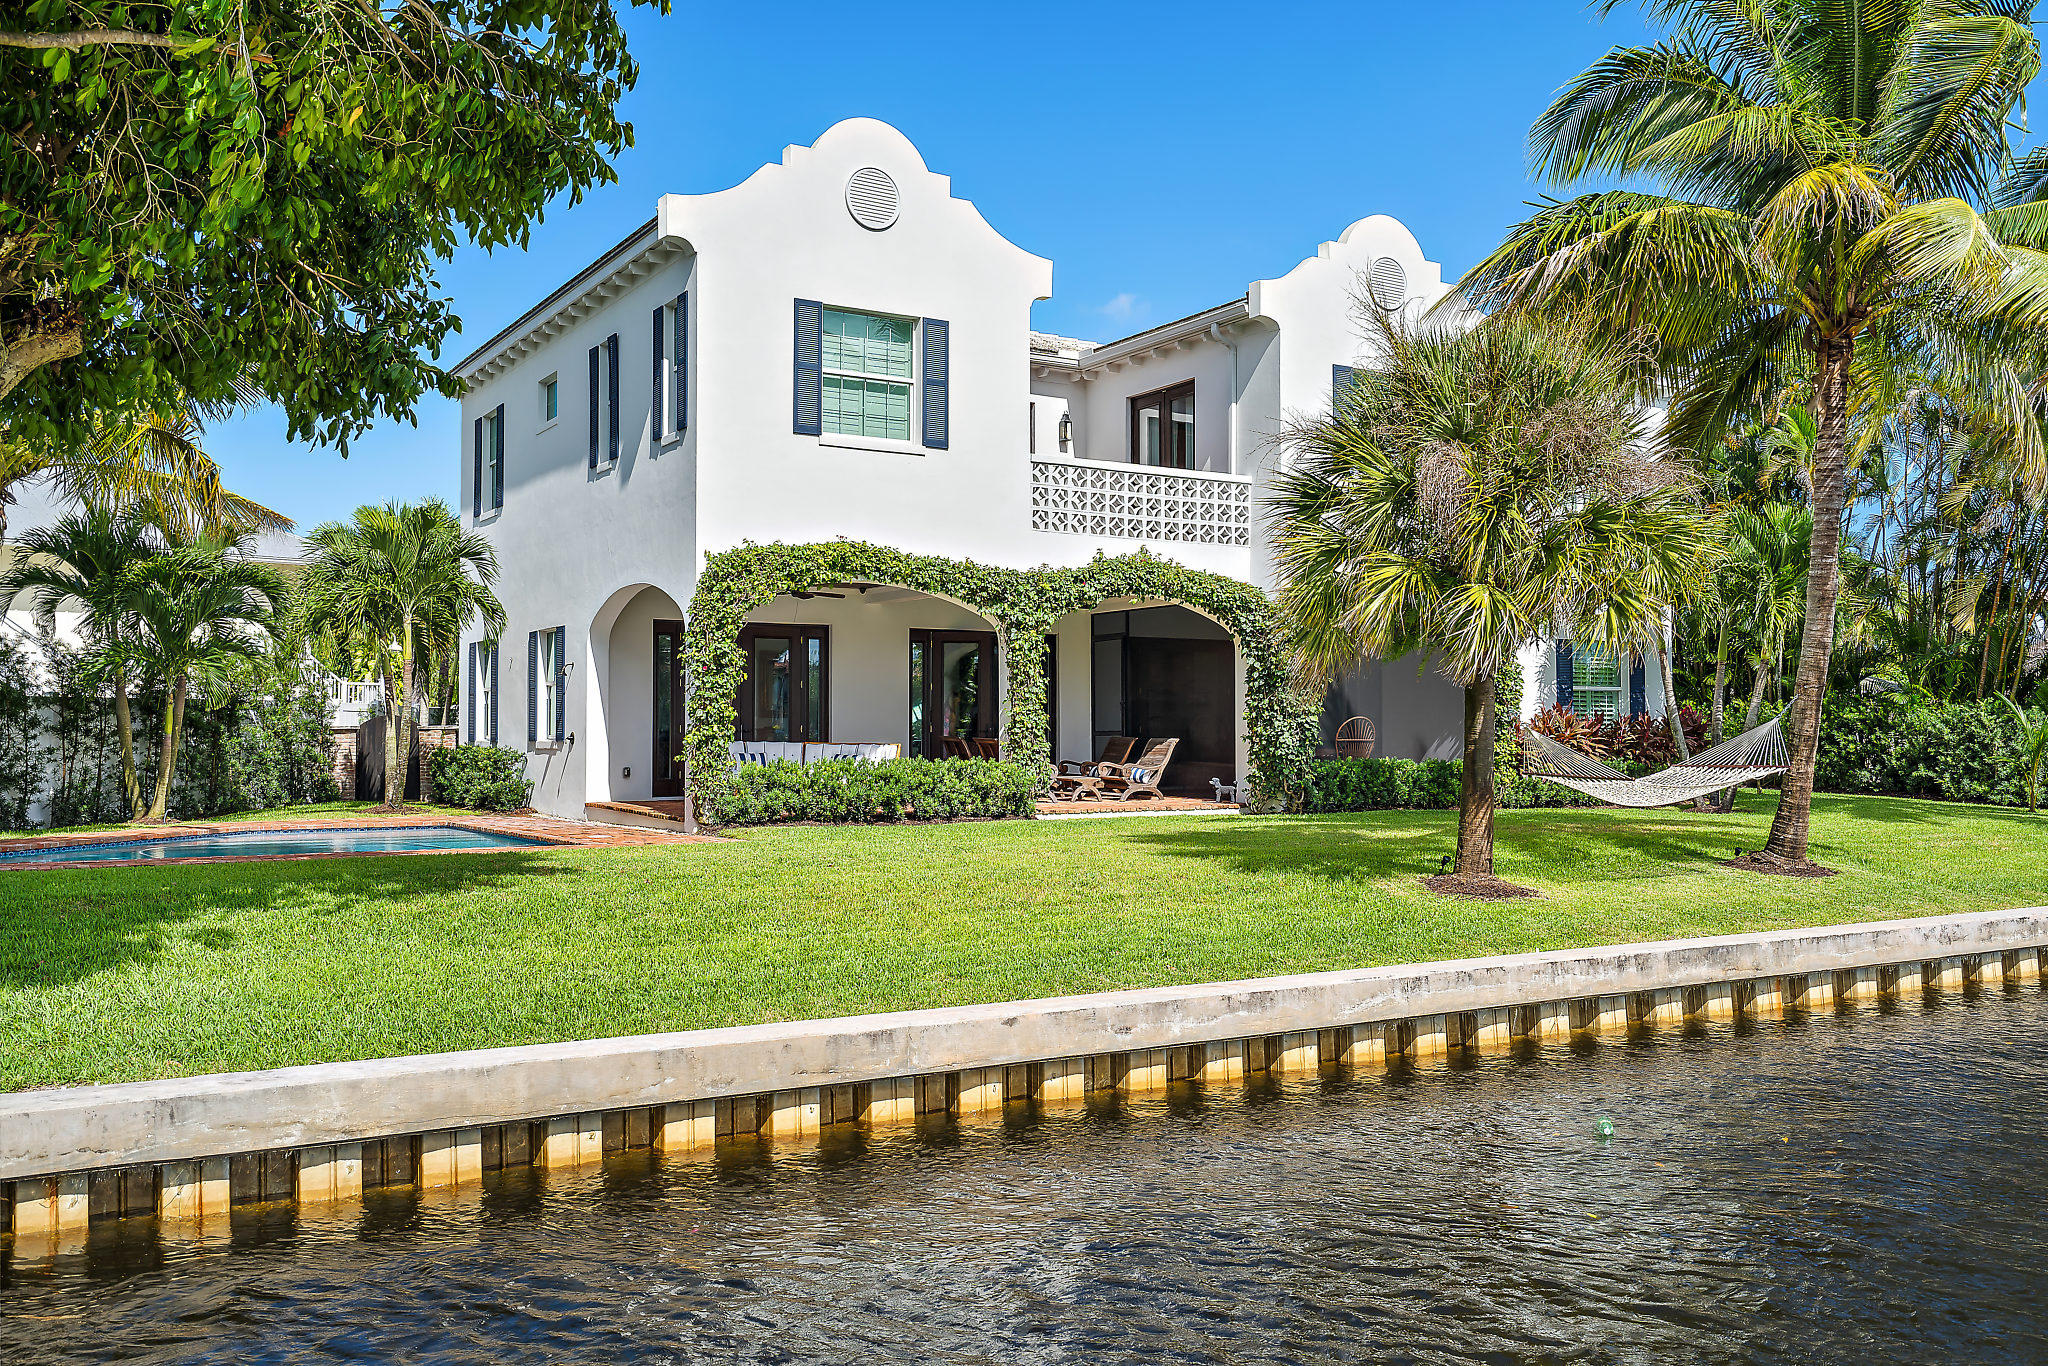 New Home for sale at 9217 Cove Point Street in Tequesta